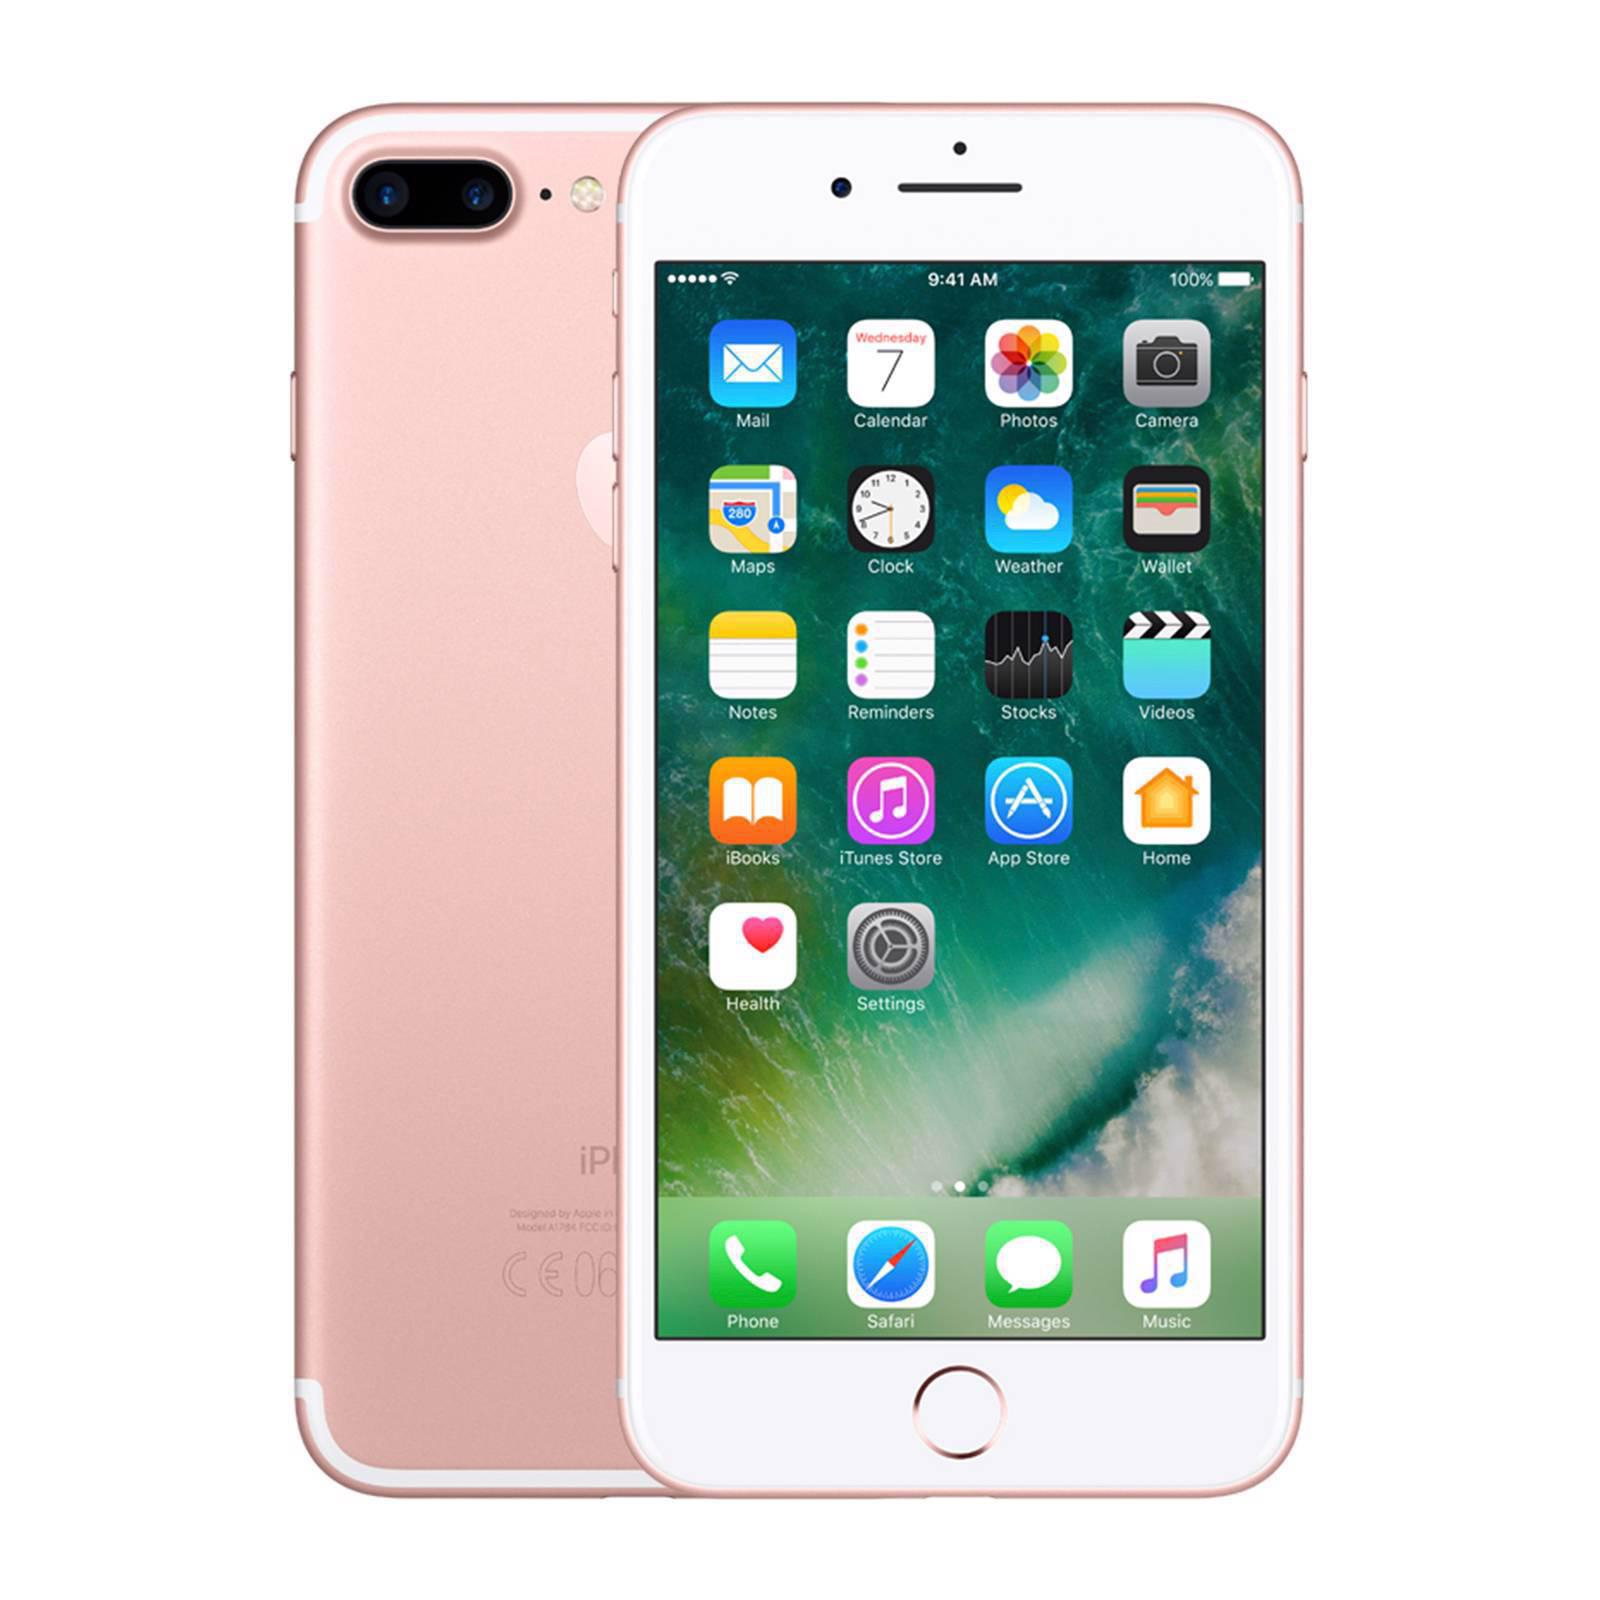 7c75321ef41 iPhone 7 Plus 128 GB - Oro Rosa - Libre Reacondicionado | Back Market